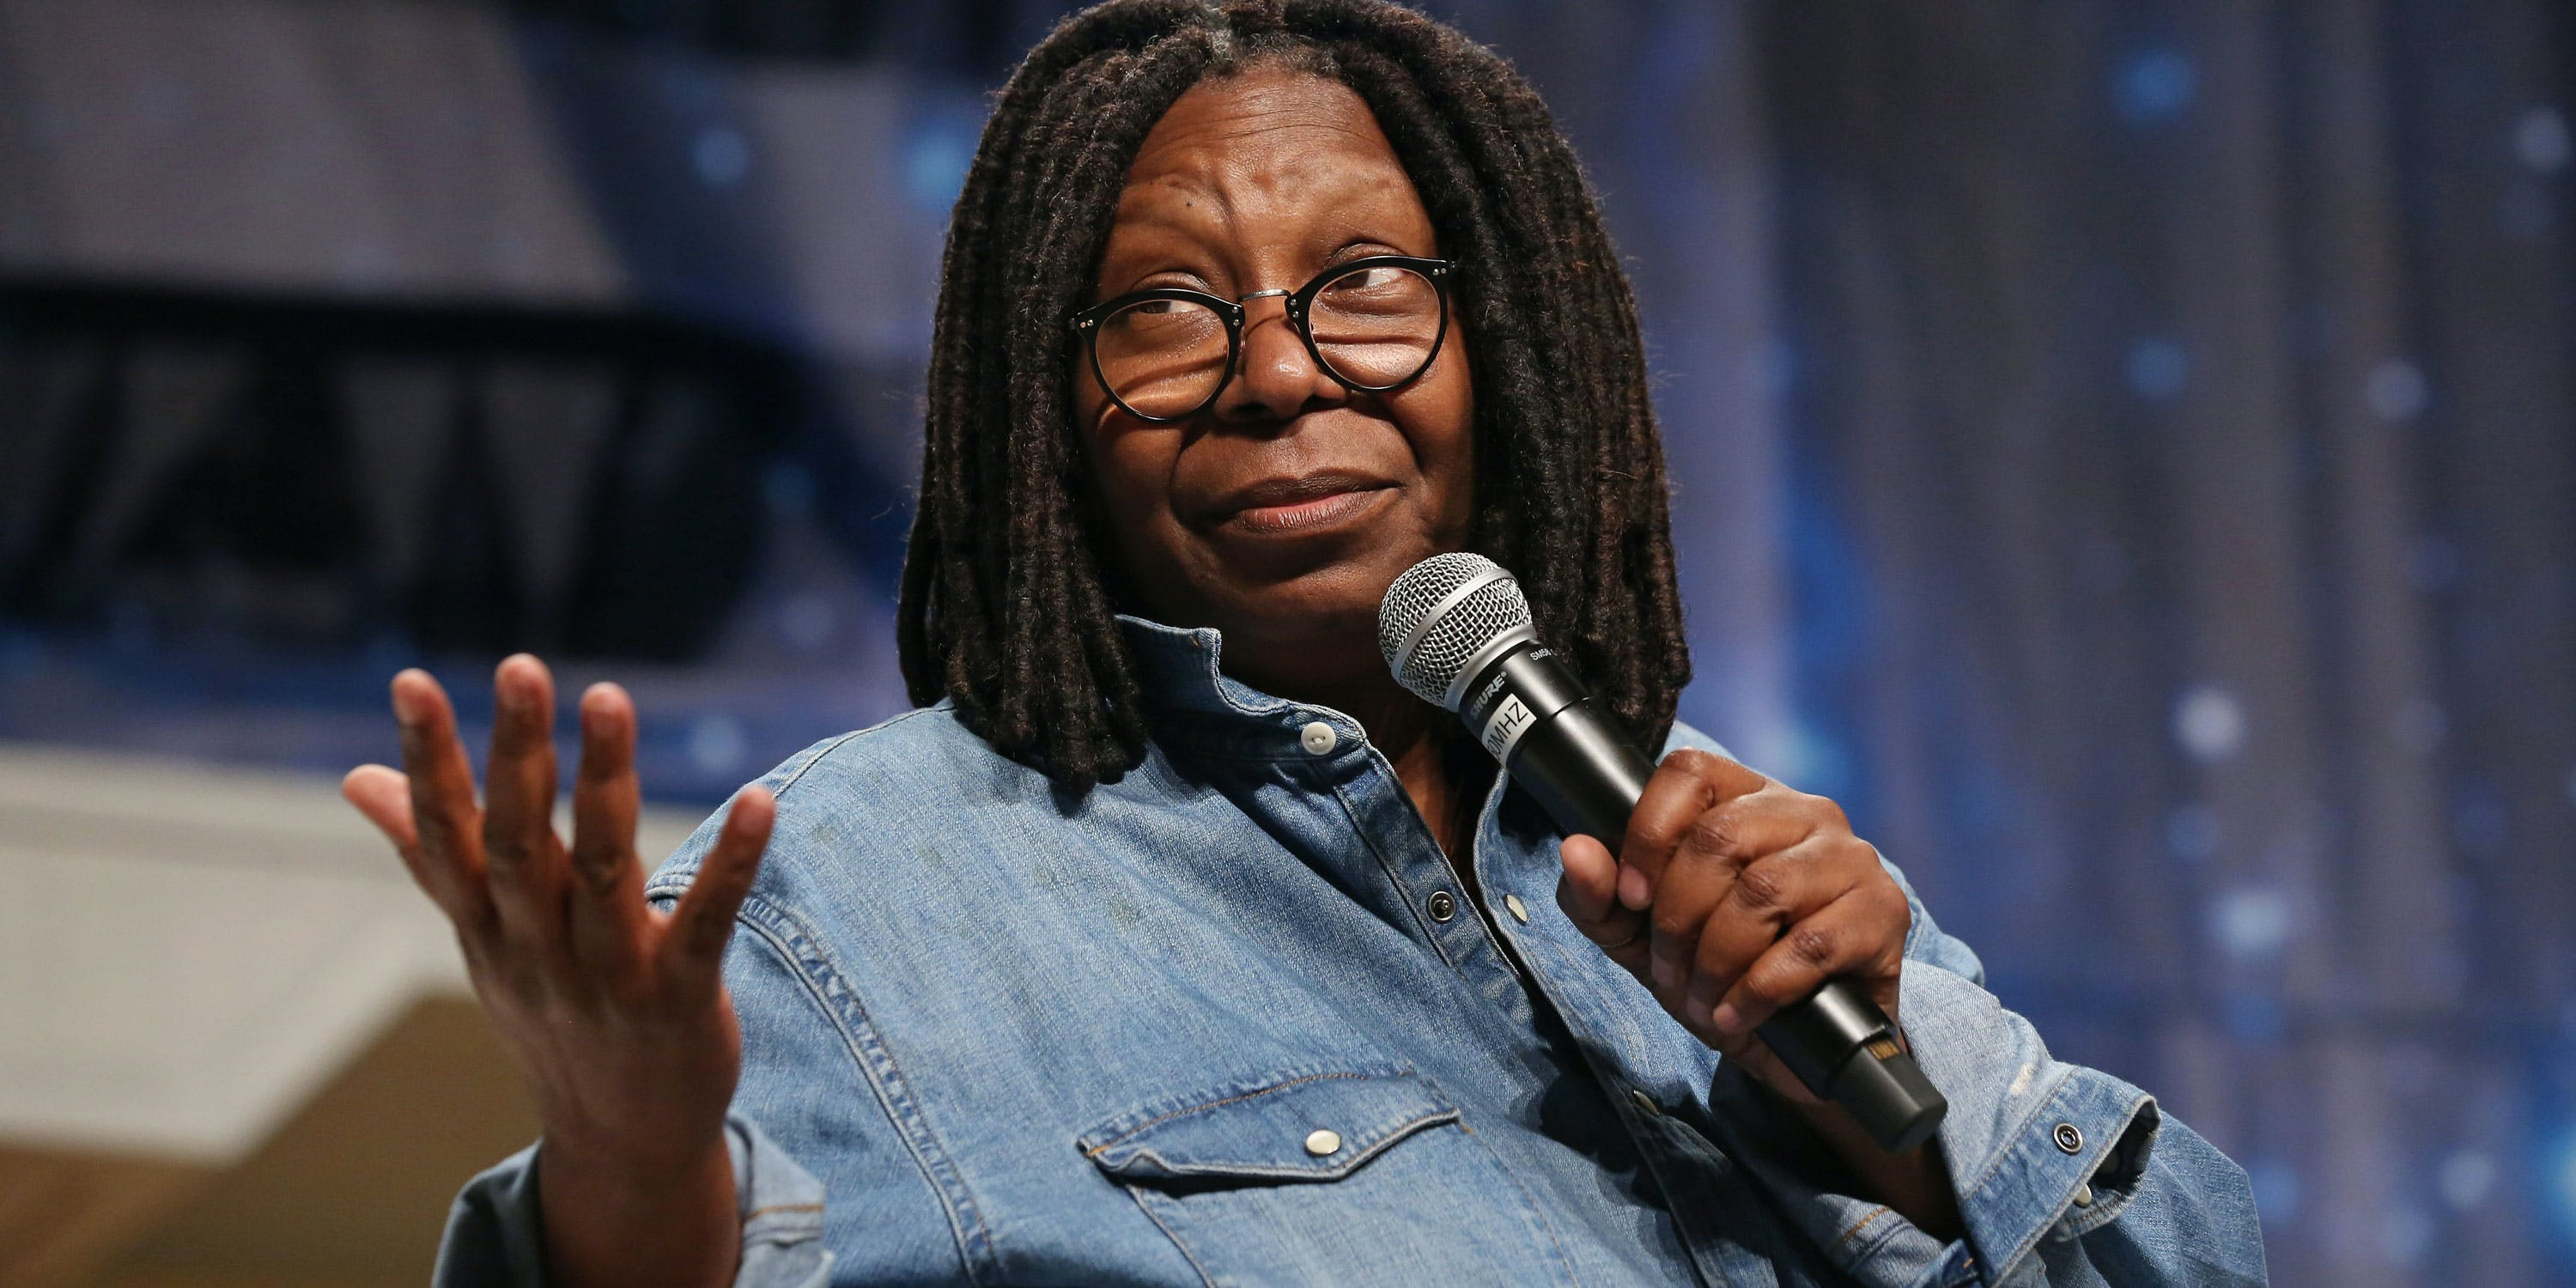 Actress Whoopi Goldberg speaks during the 15th annual official Star Trek convention at the Rio Hotel & Casino on August 4, 2016 in Las Vegas, Nevada. She recently penned an opEd from for the Orange County Register on why women should use cannabis. (Photo by Gabe Ginsberg/Getty Images)